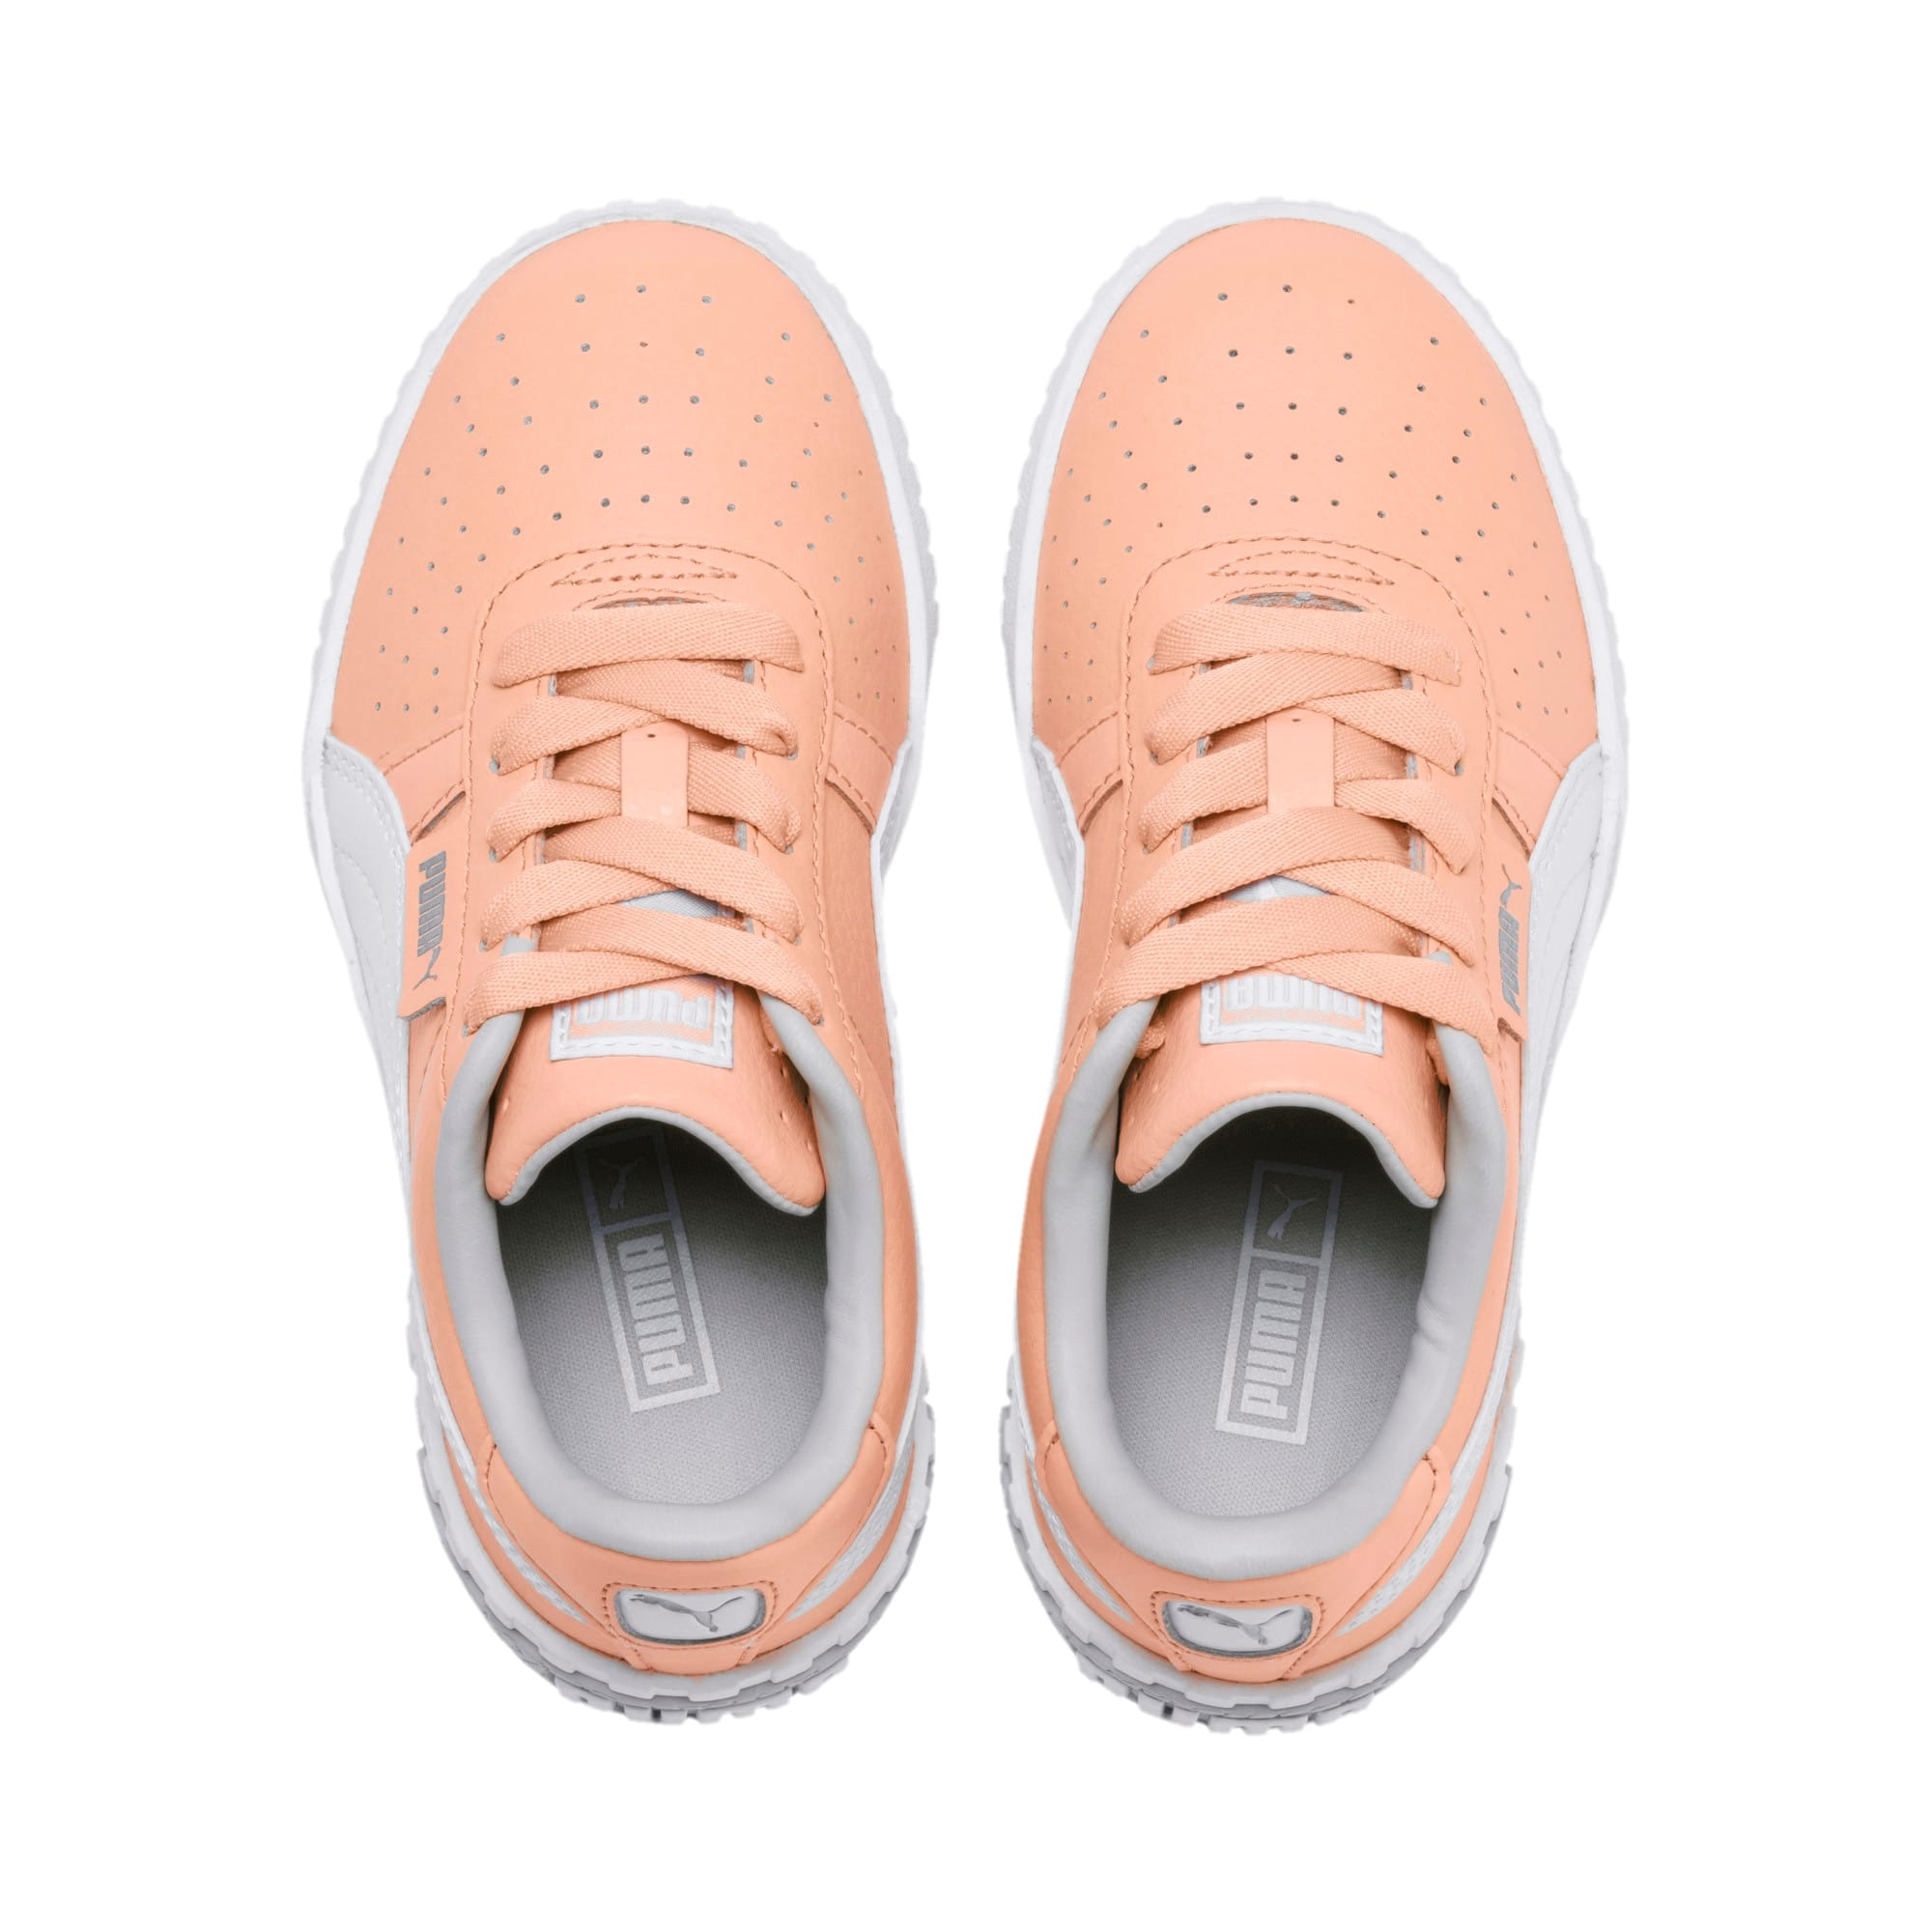 Thumbnail 6 of Cali Girls' Trainers, Peach Parfait-Heather, medium